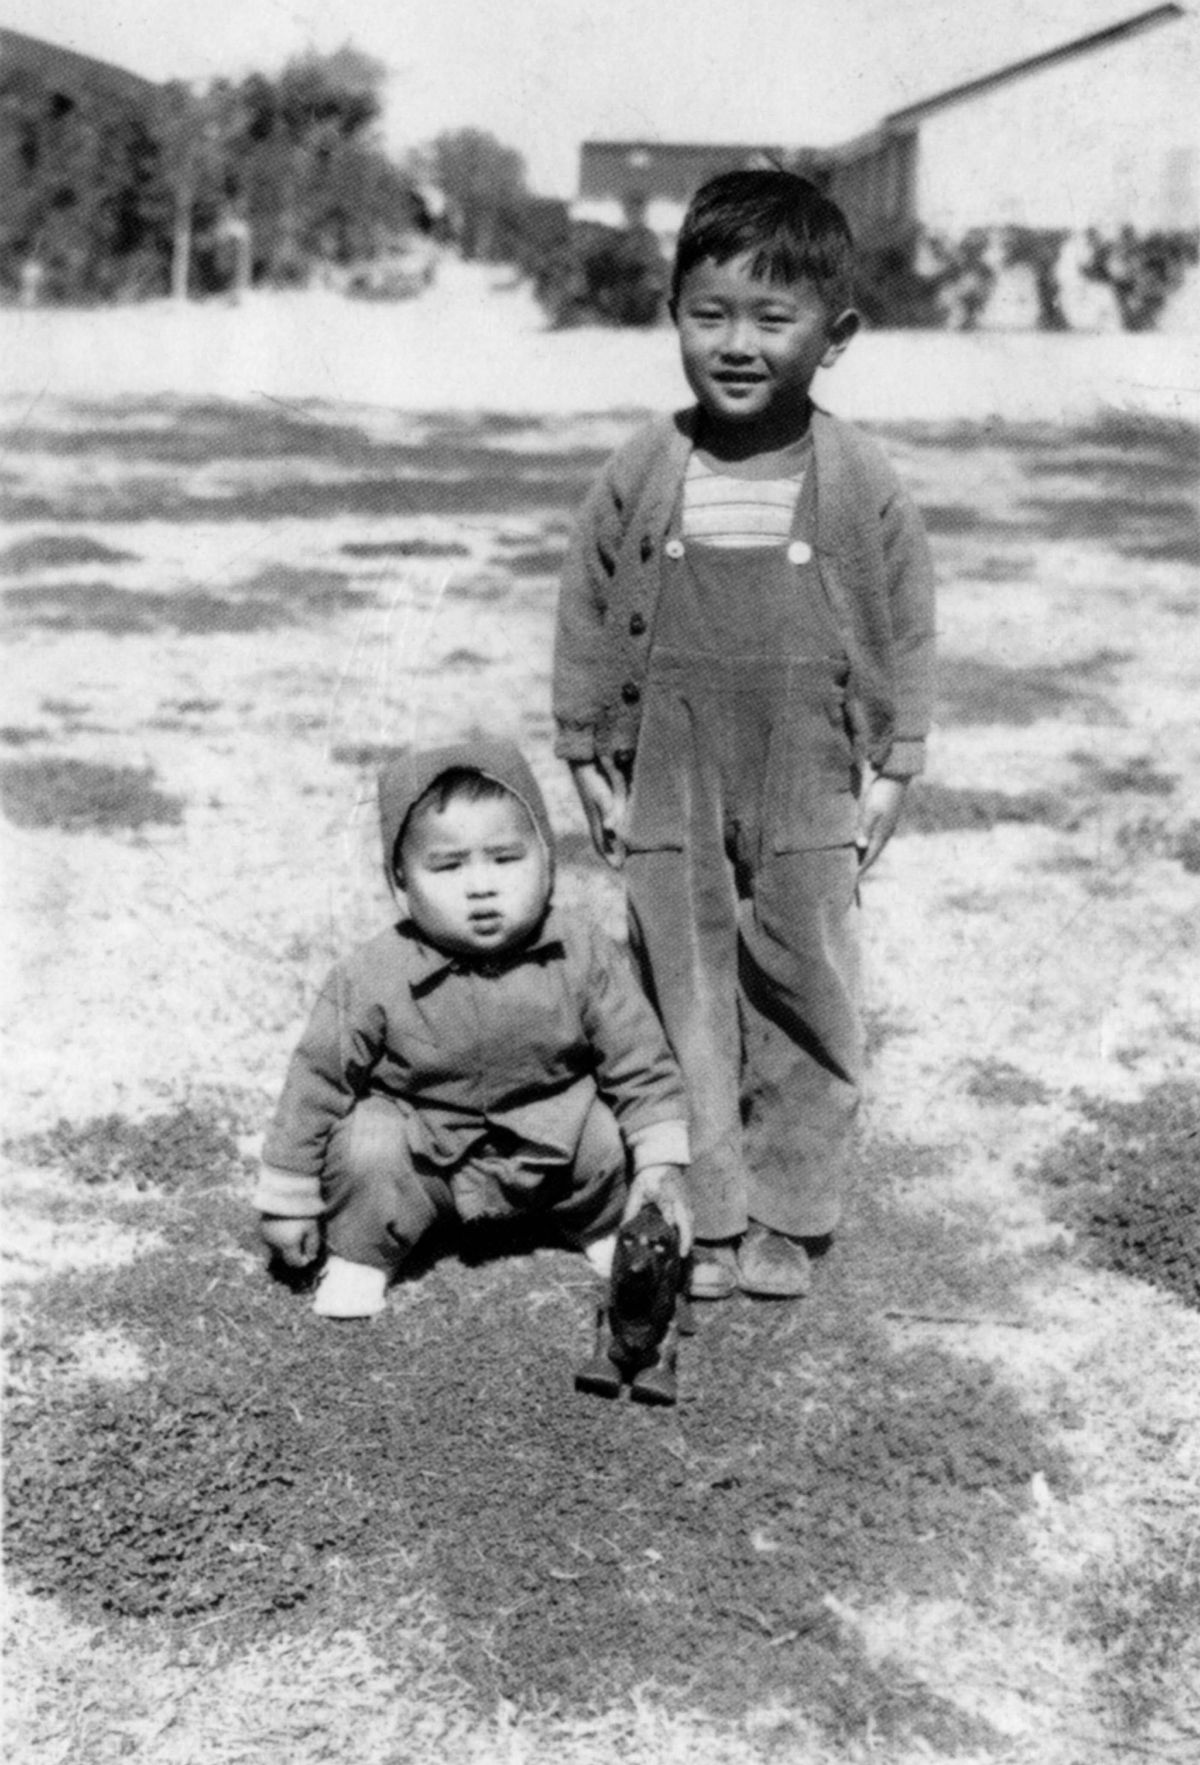 """Sun-Times editor Frank Sugano (seated, with toy) and his brother Bill at the Gila River internment camp in Arizona where Frank was born. He became a respected Sun-Times editor. 